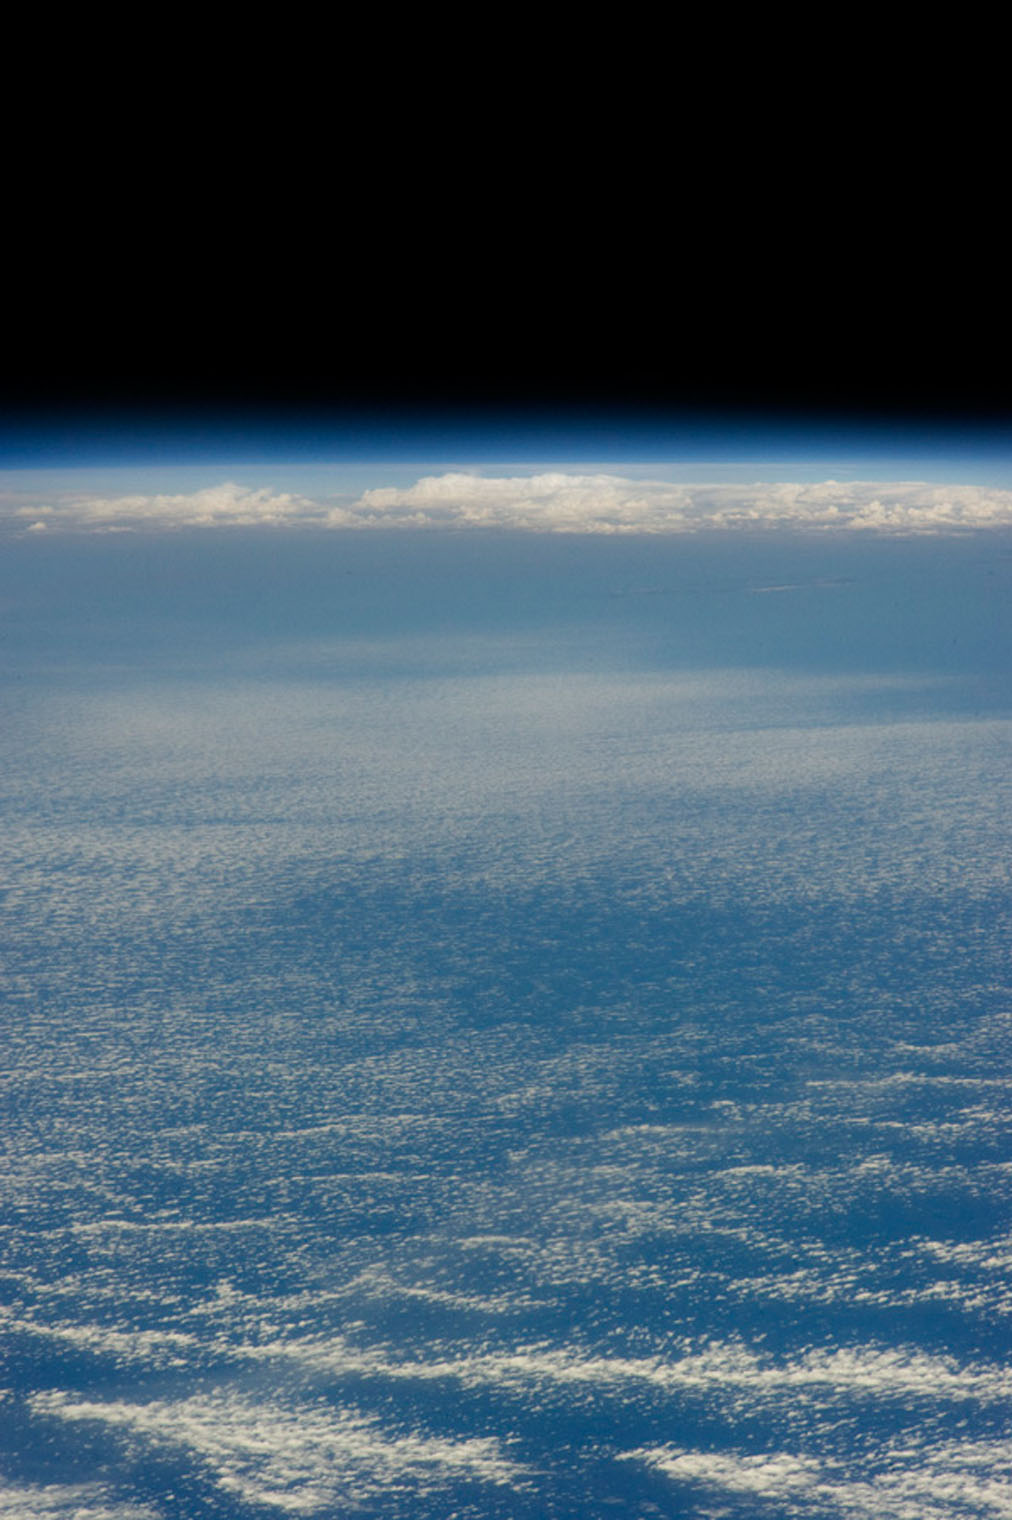 A dramatic view of our Earth